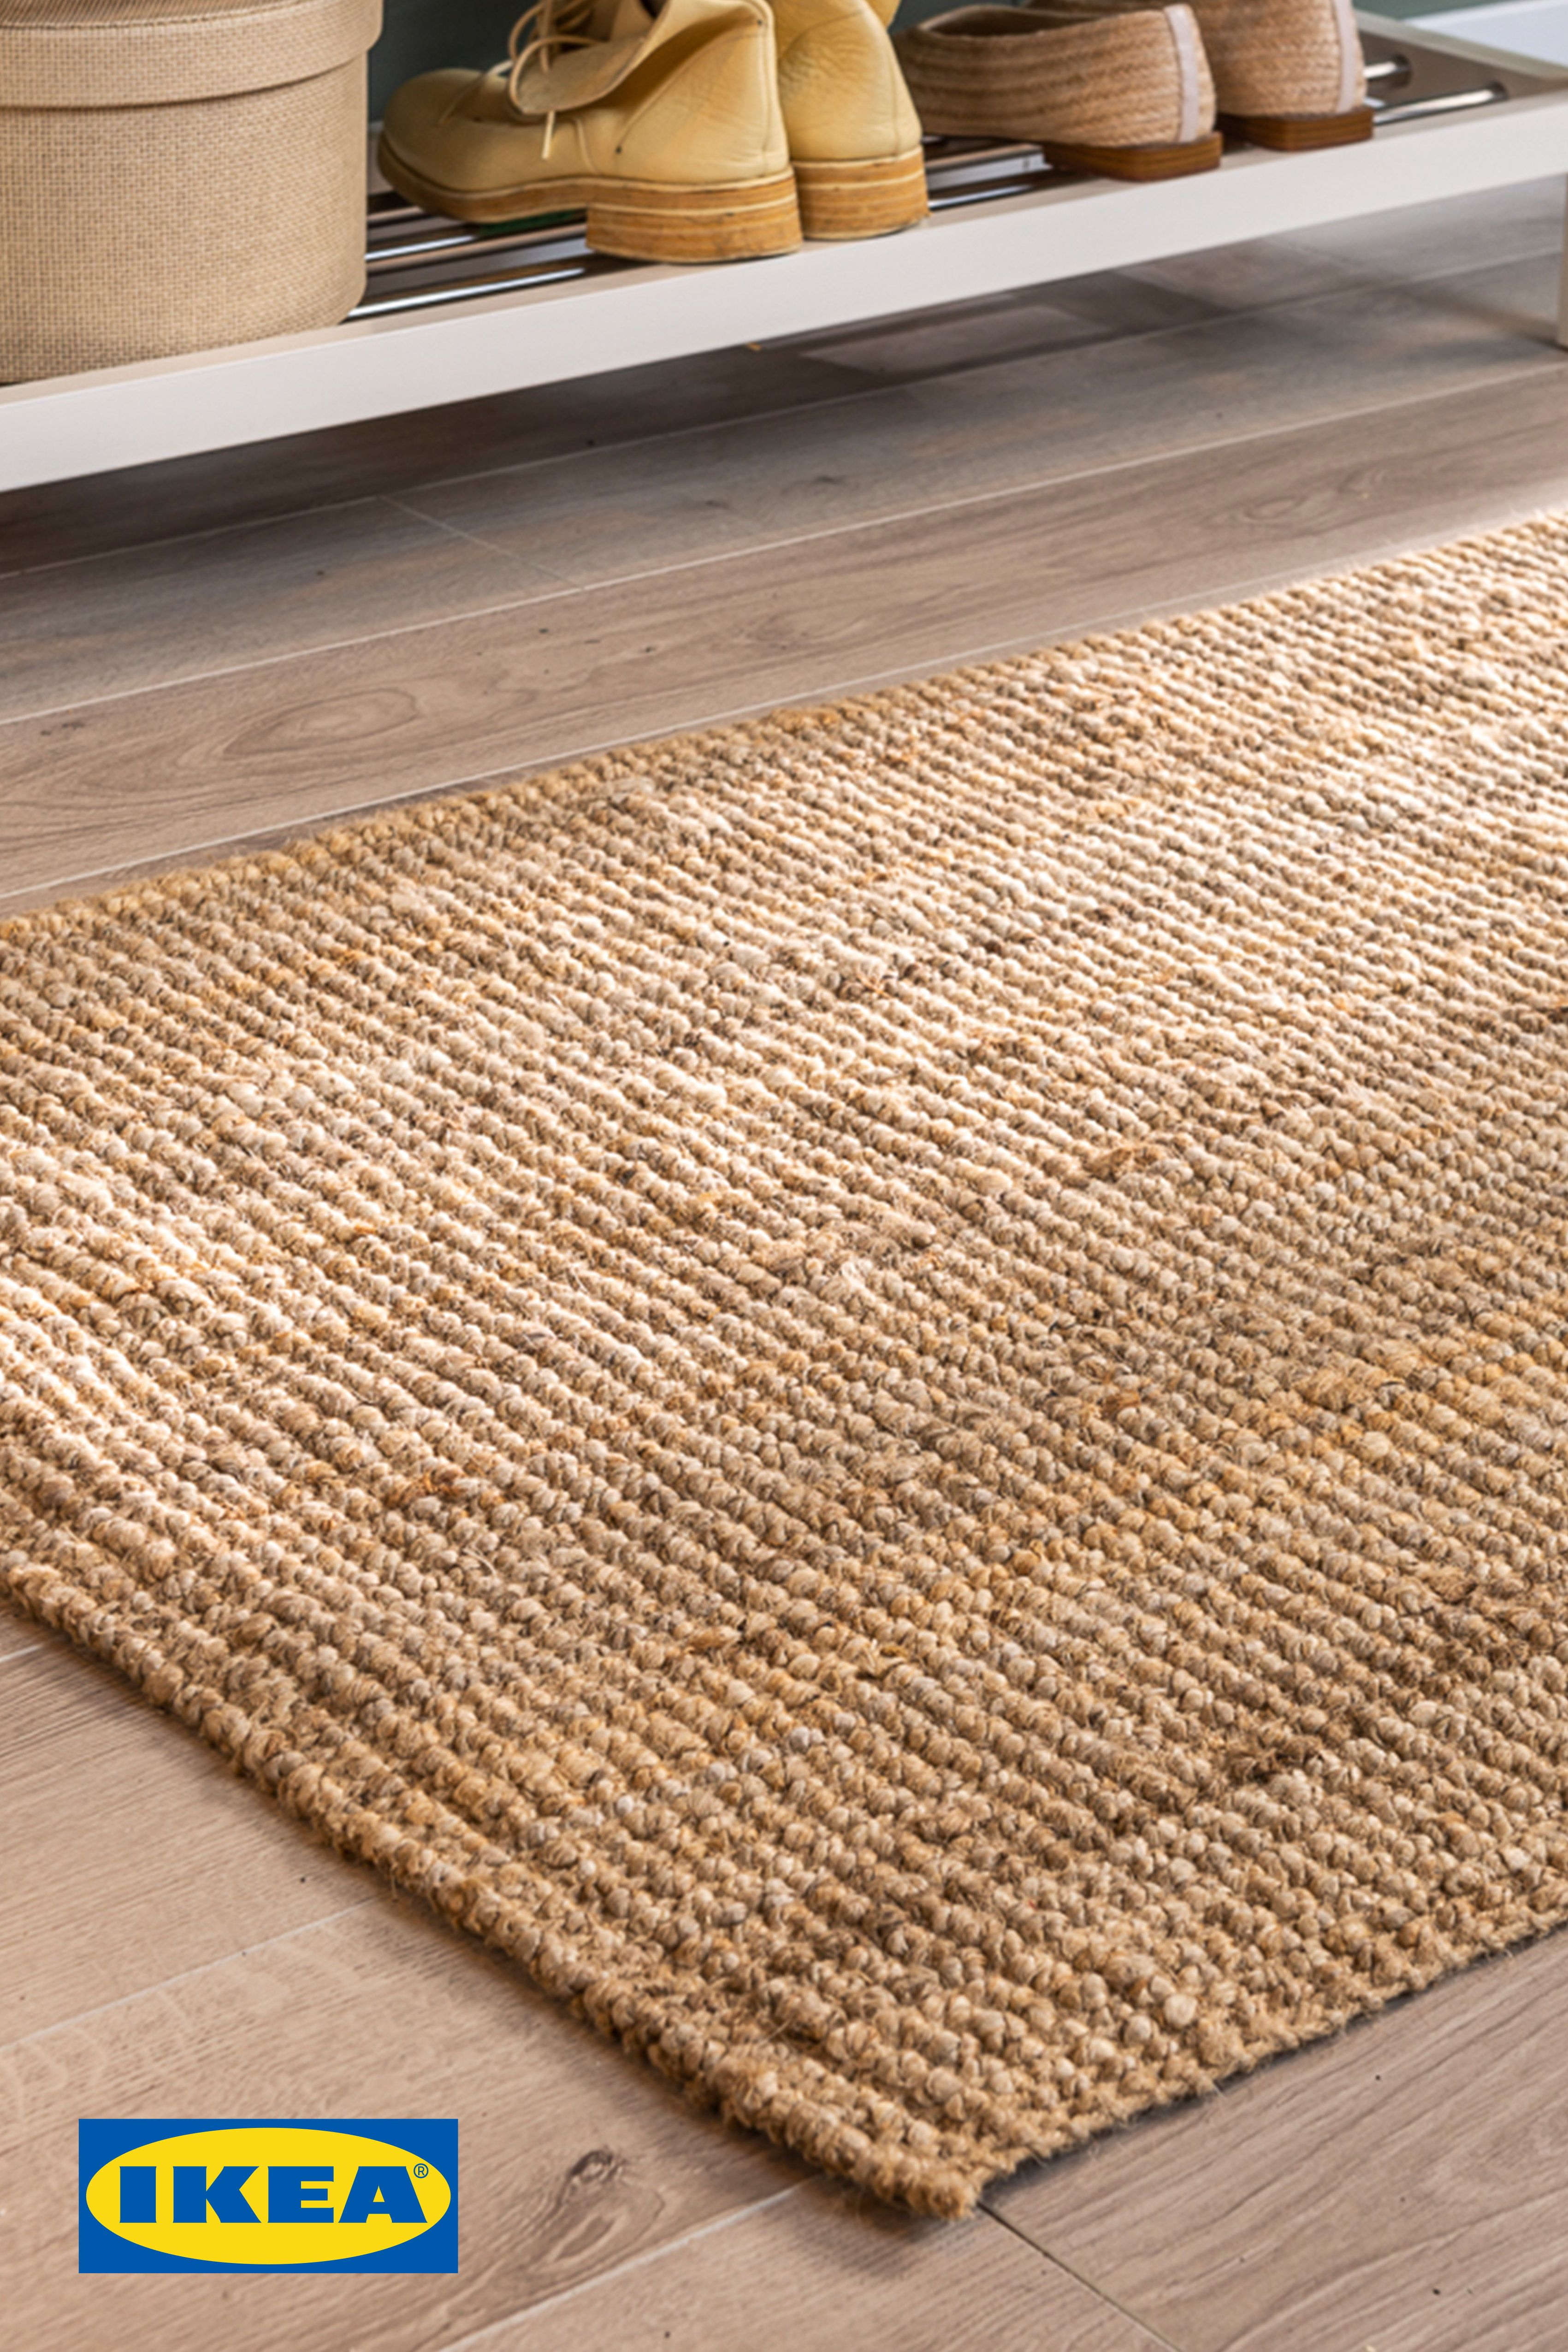 Lohals Rug Flatwoven Natural Ikea In 2020 Rugs Flatwoven How To Clean Carpet